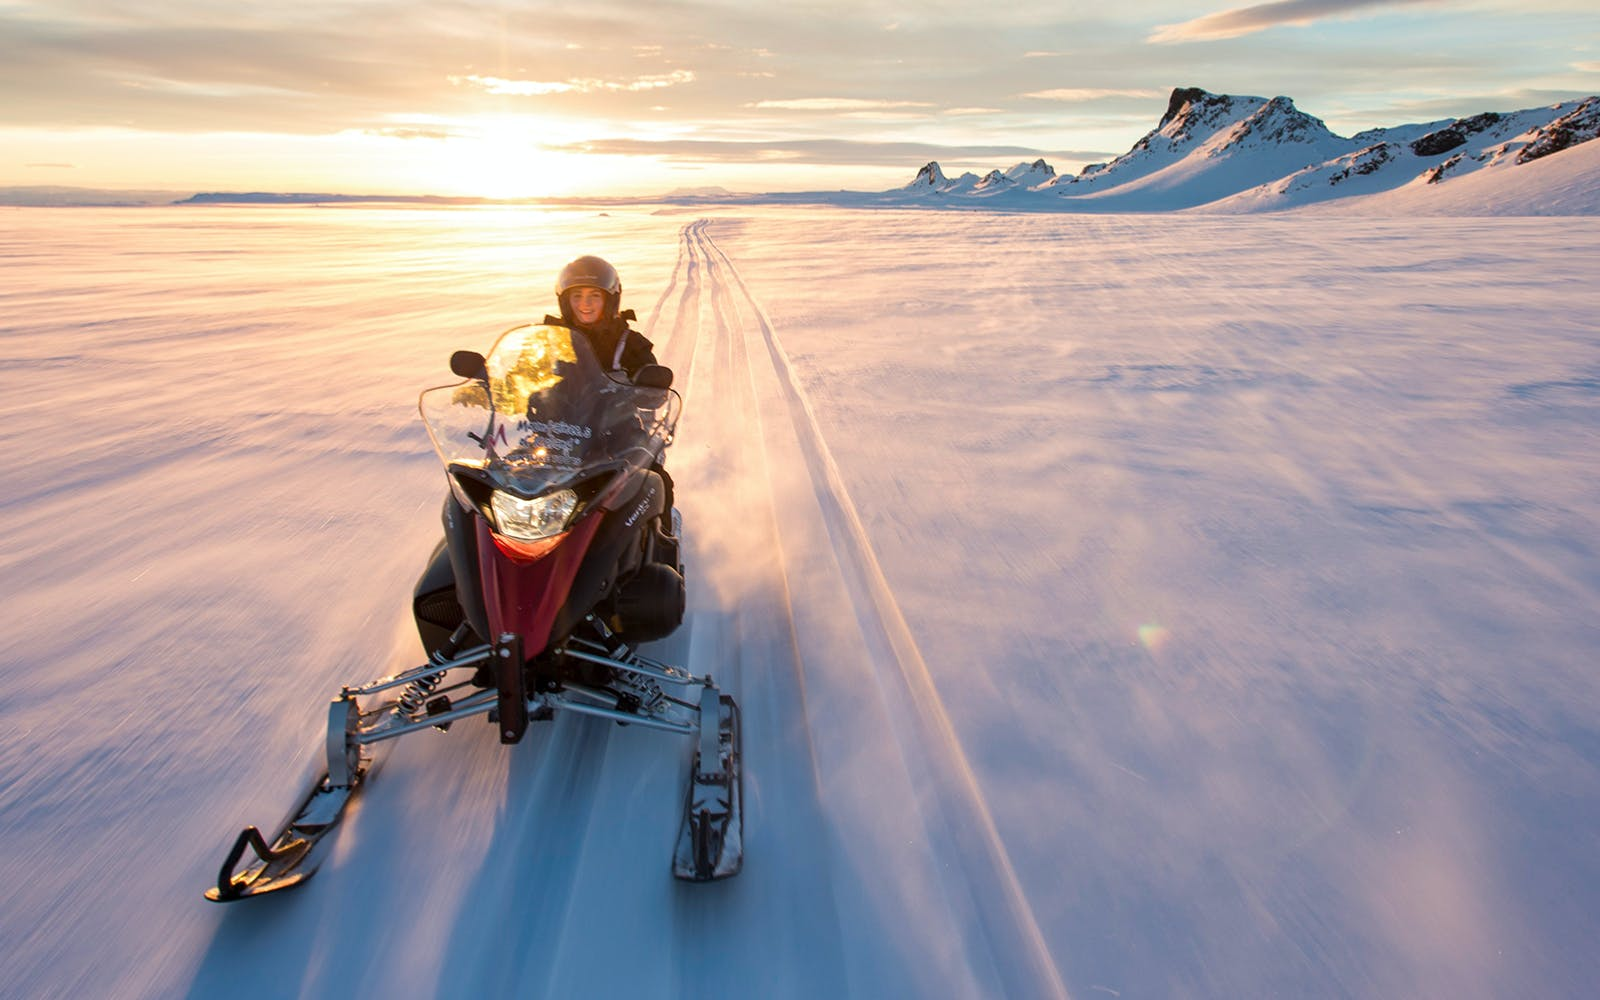 Golden Circle Tour with Langjokull Glacier Snowmobile Ride